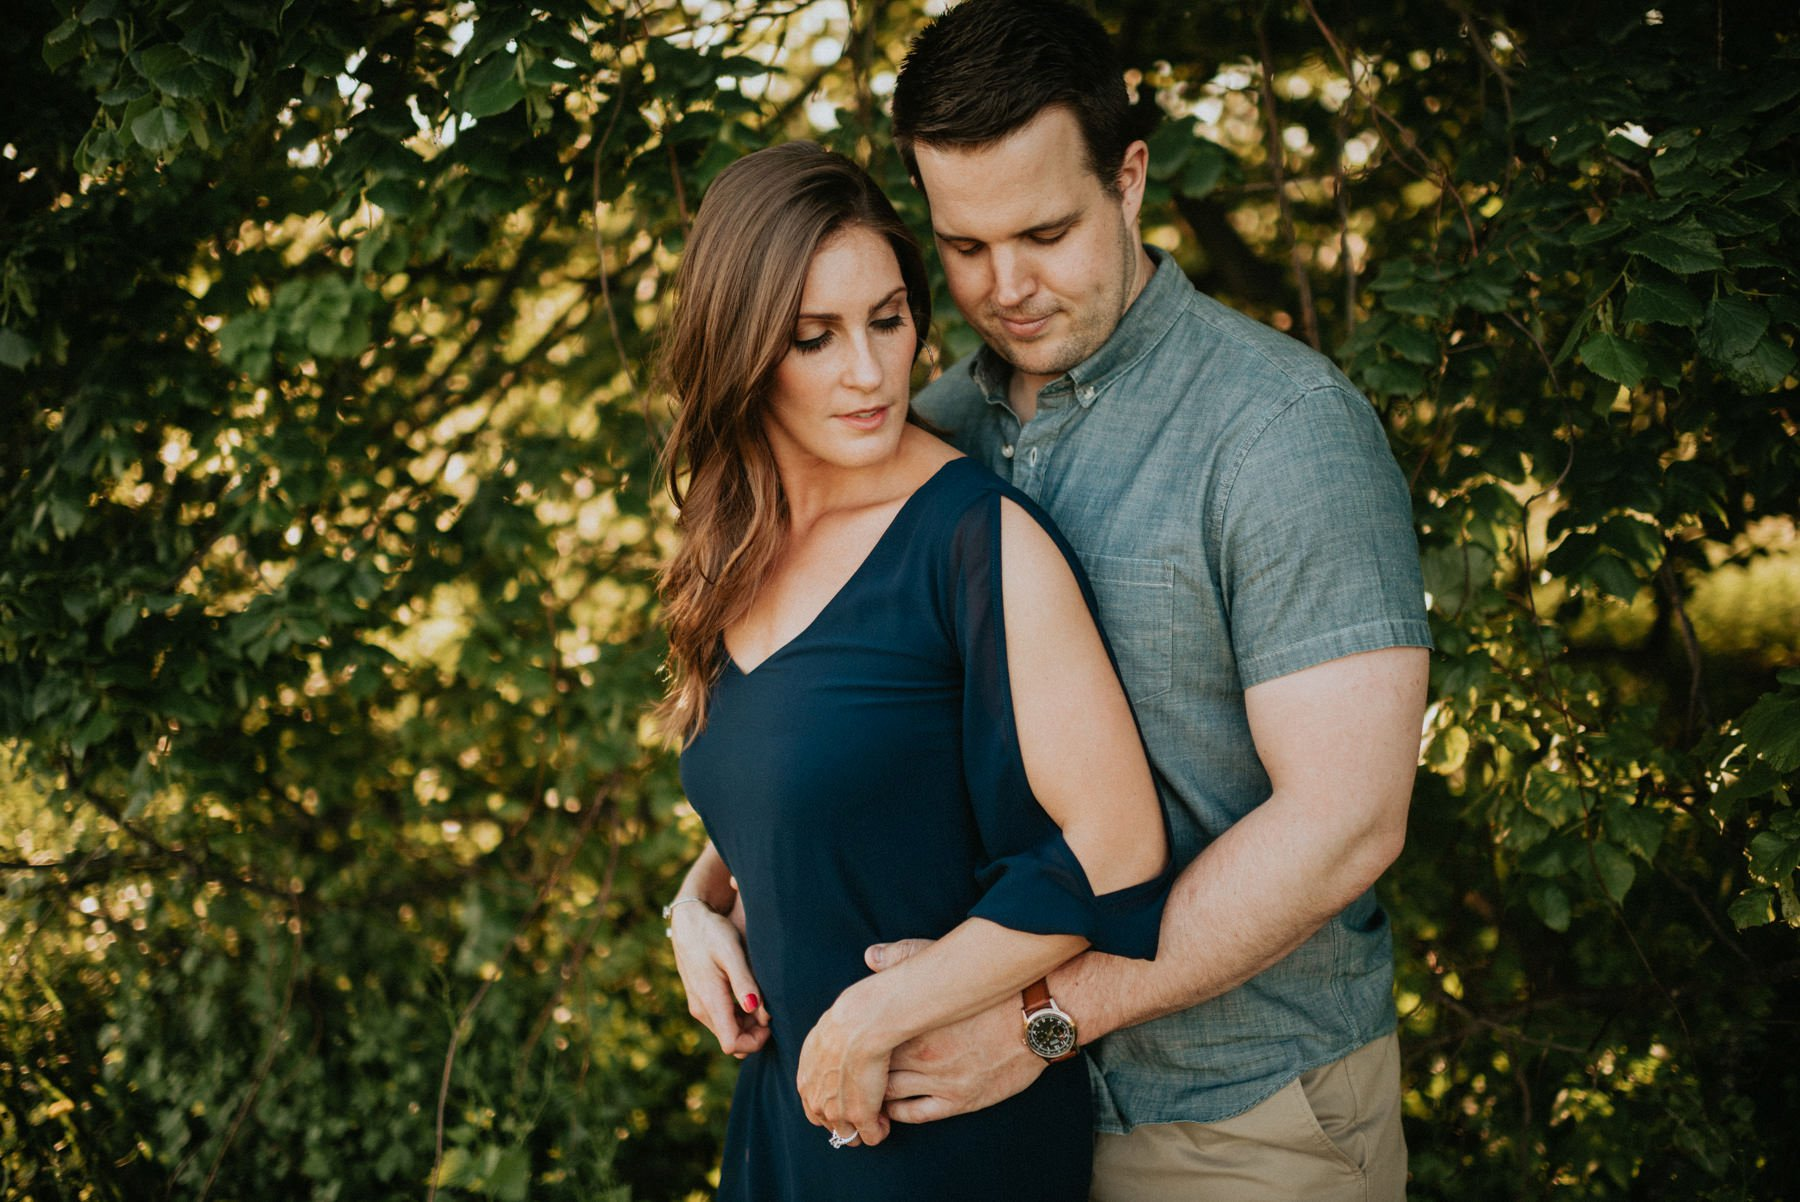 Newtown-square-engagement-session-18.jpg